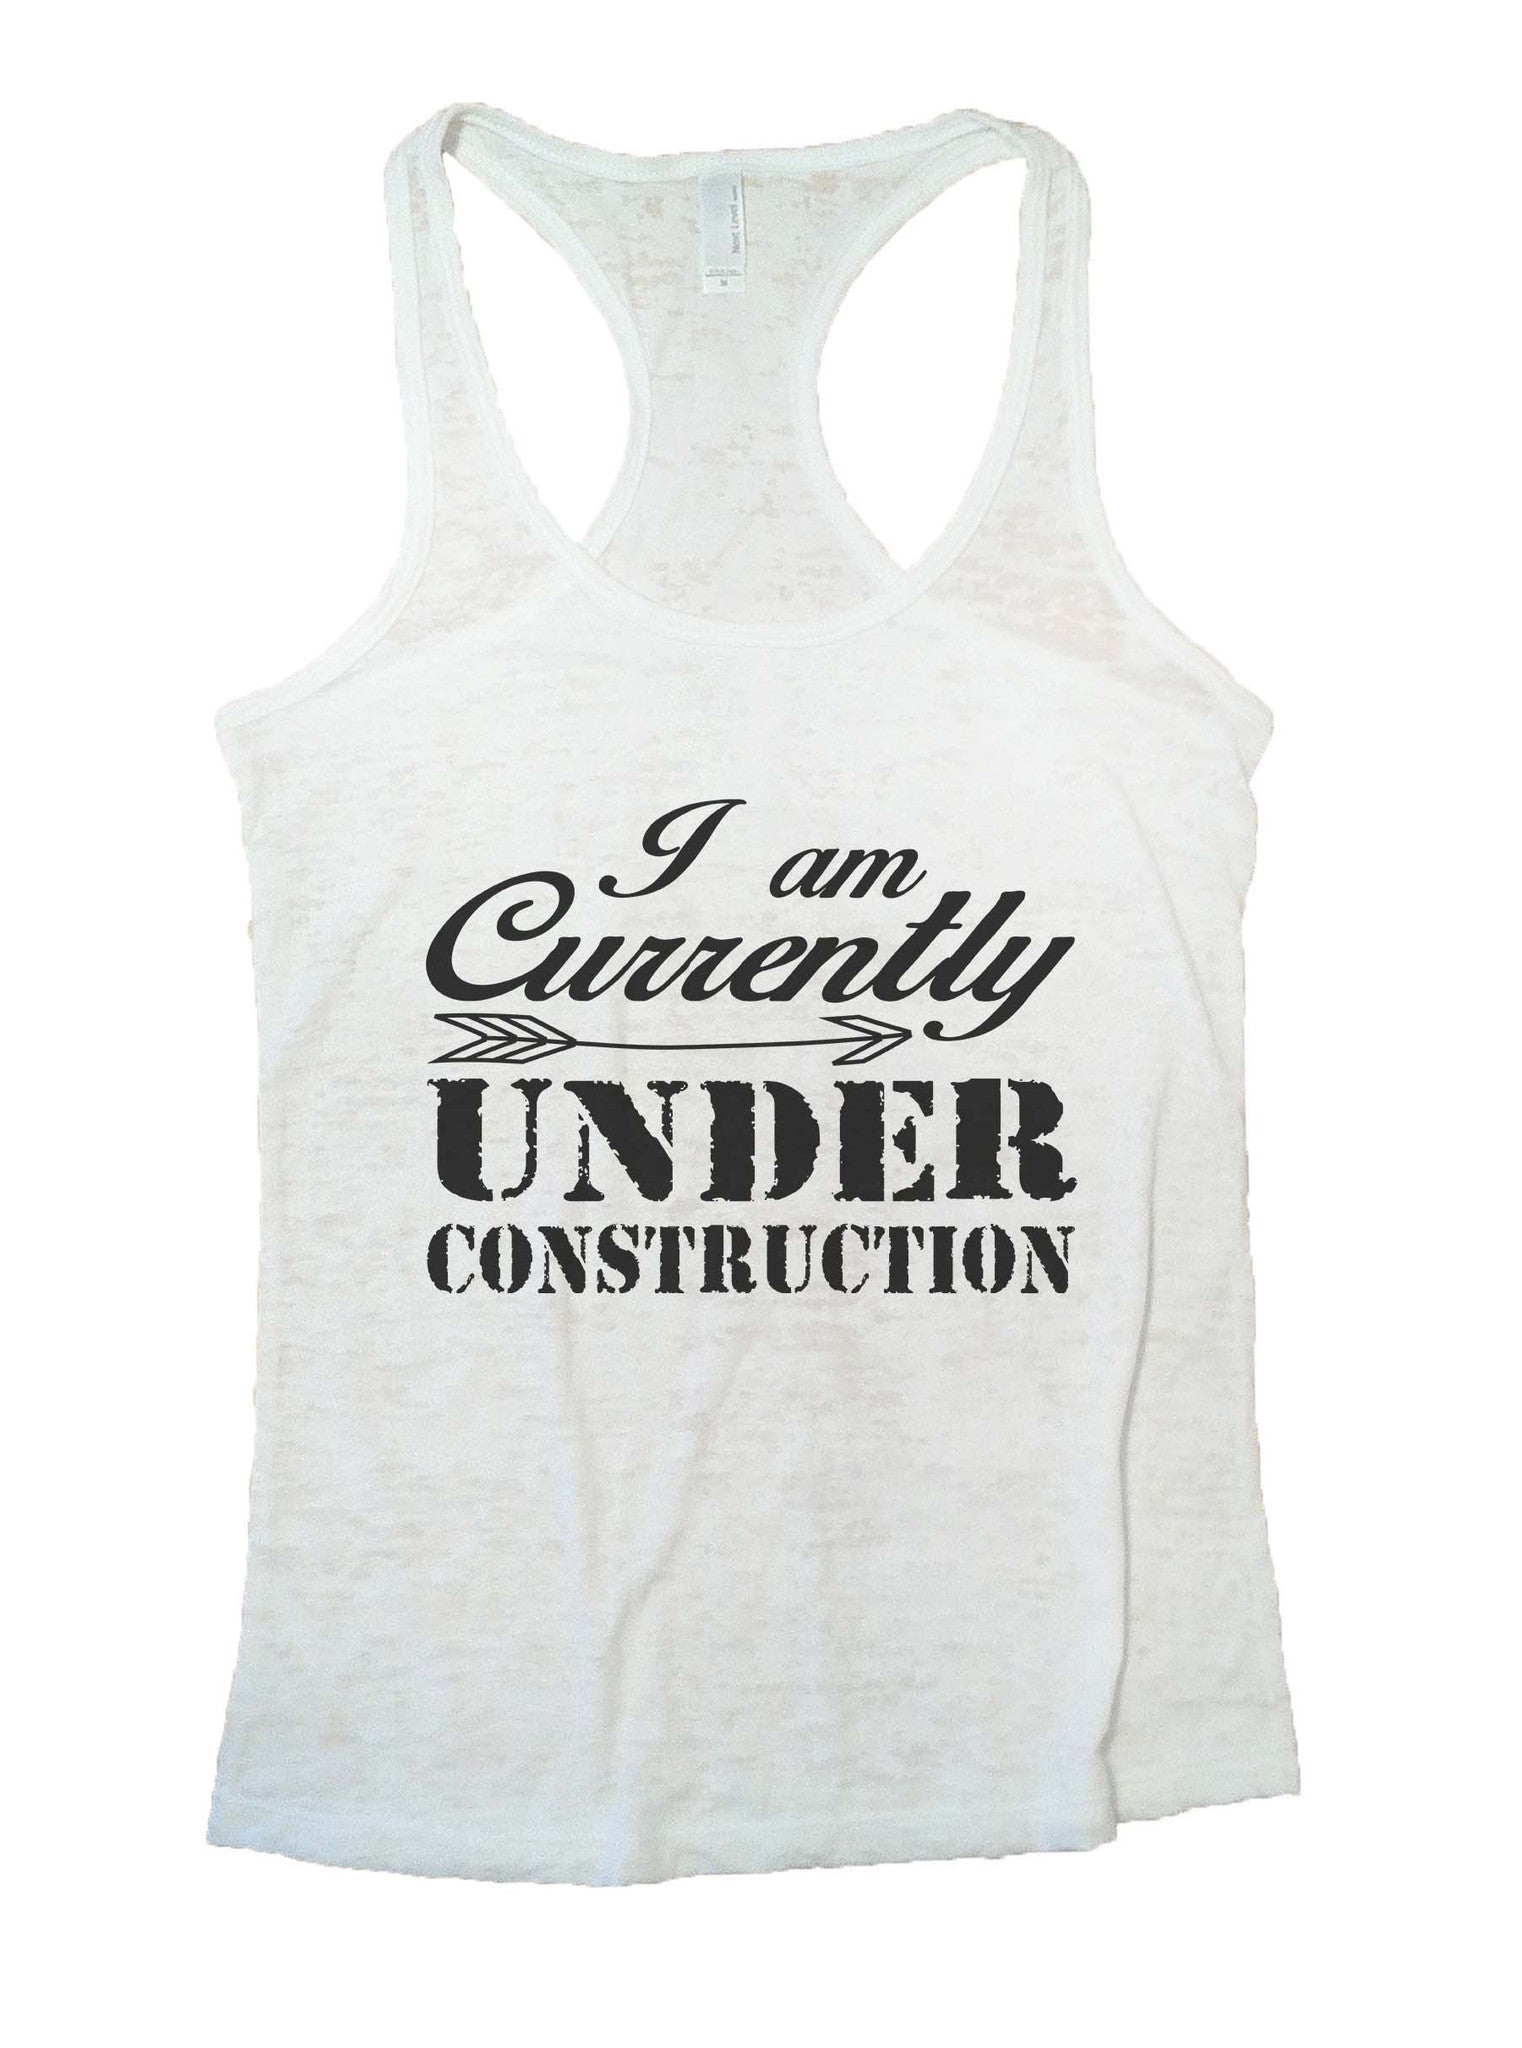 I Am Currently Under Construction Burnout Tank Top By BurnoutTankTops.com - 911 - Funny Shirts Tank Tops Burnouts and Triblends  - 6